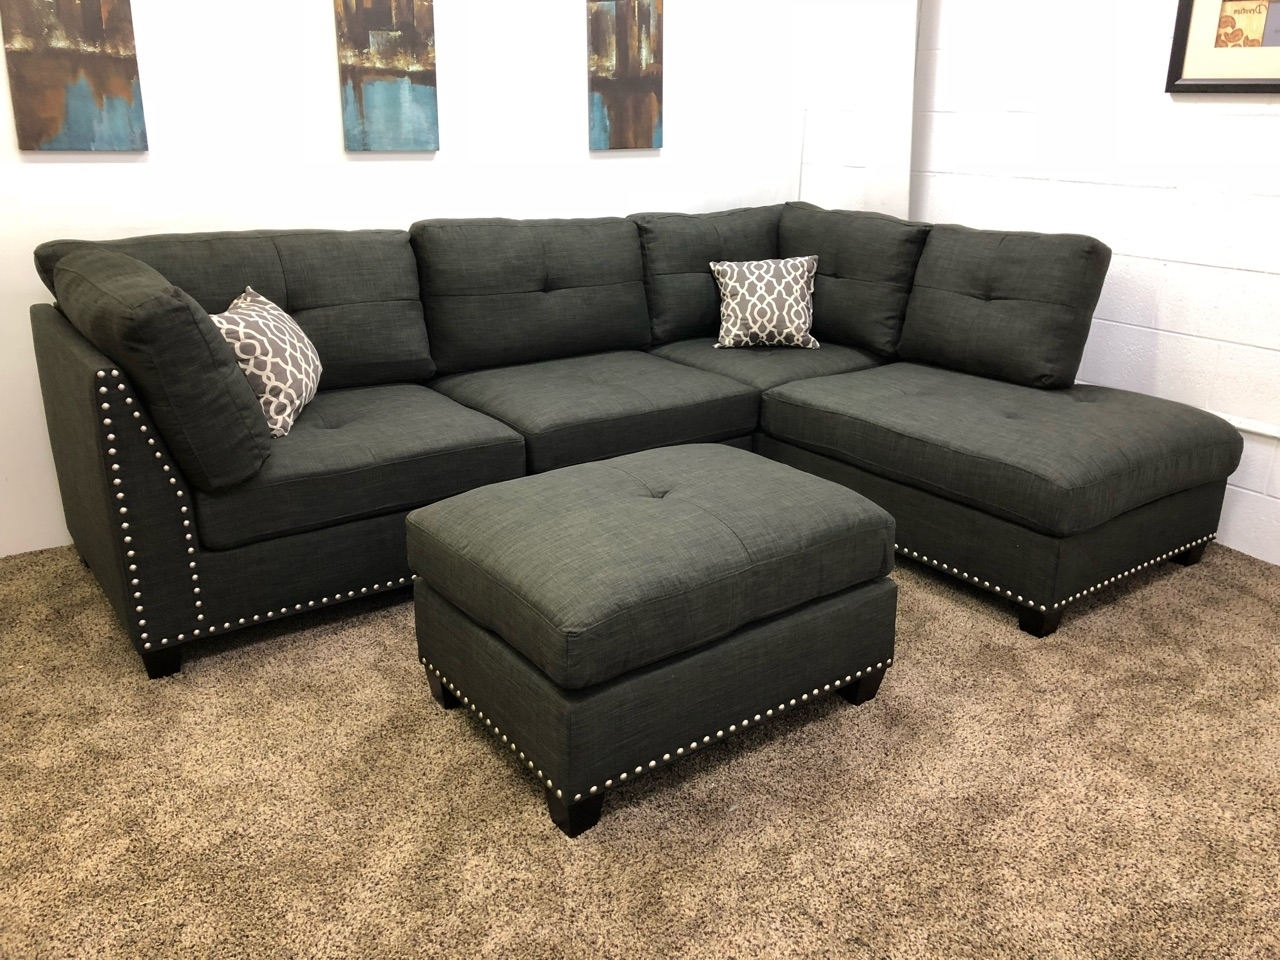 Popular 0 In Stock)#n753R  $250 Down  Black Linen Studded Linen Sectional Intended For Sectionals With Ottoman And Chaise (View 15 of 15)